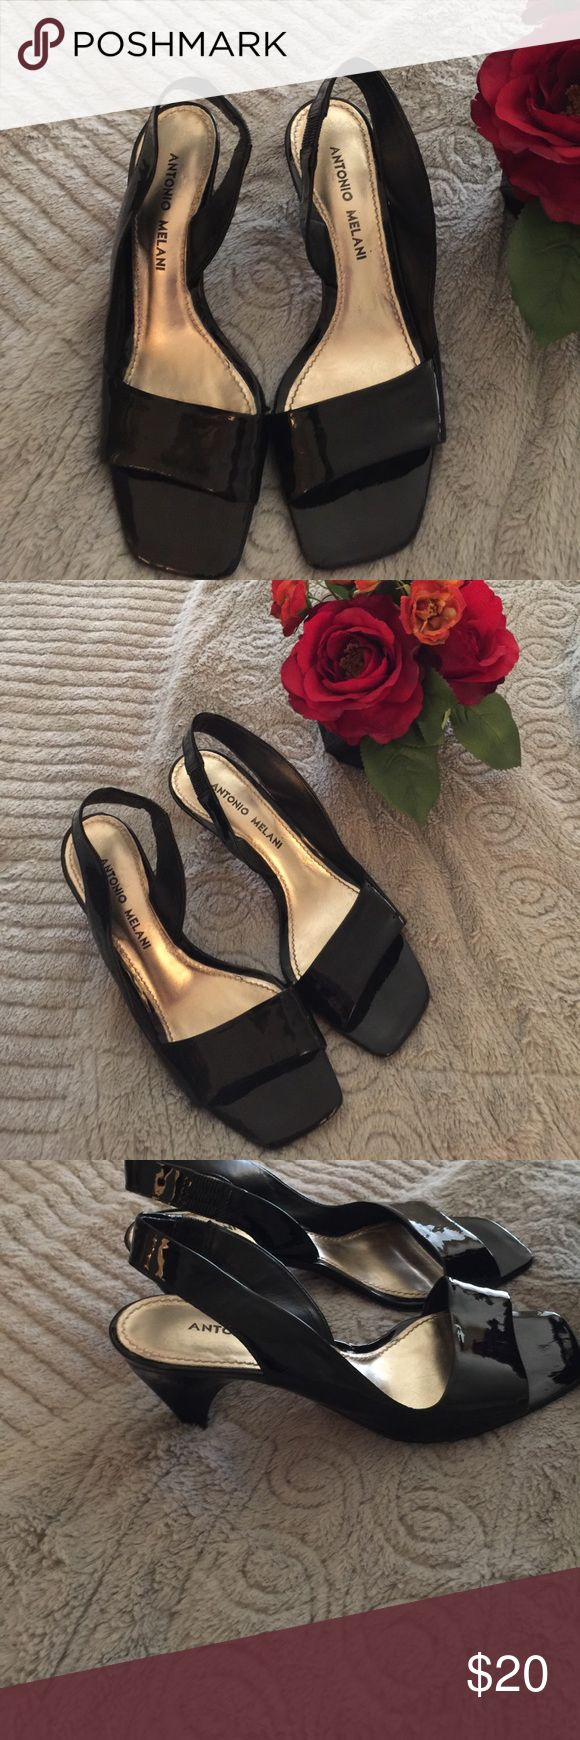 Patent leather black Antonio Melani Sz 6 Pair of a beautiful pair of Strappy Sandals patent black leather by Antonio Melani Sz 6 2 1/2 inch heels so pretty in perfect condition no stains or rips. ANTONIO MELANI Shoes Heels